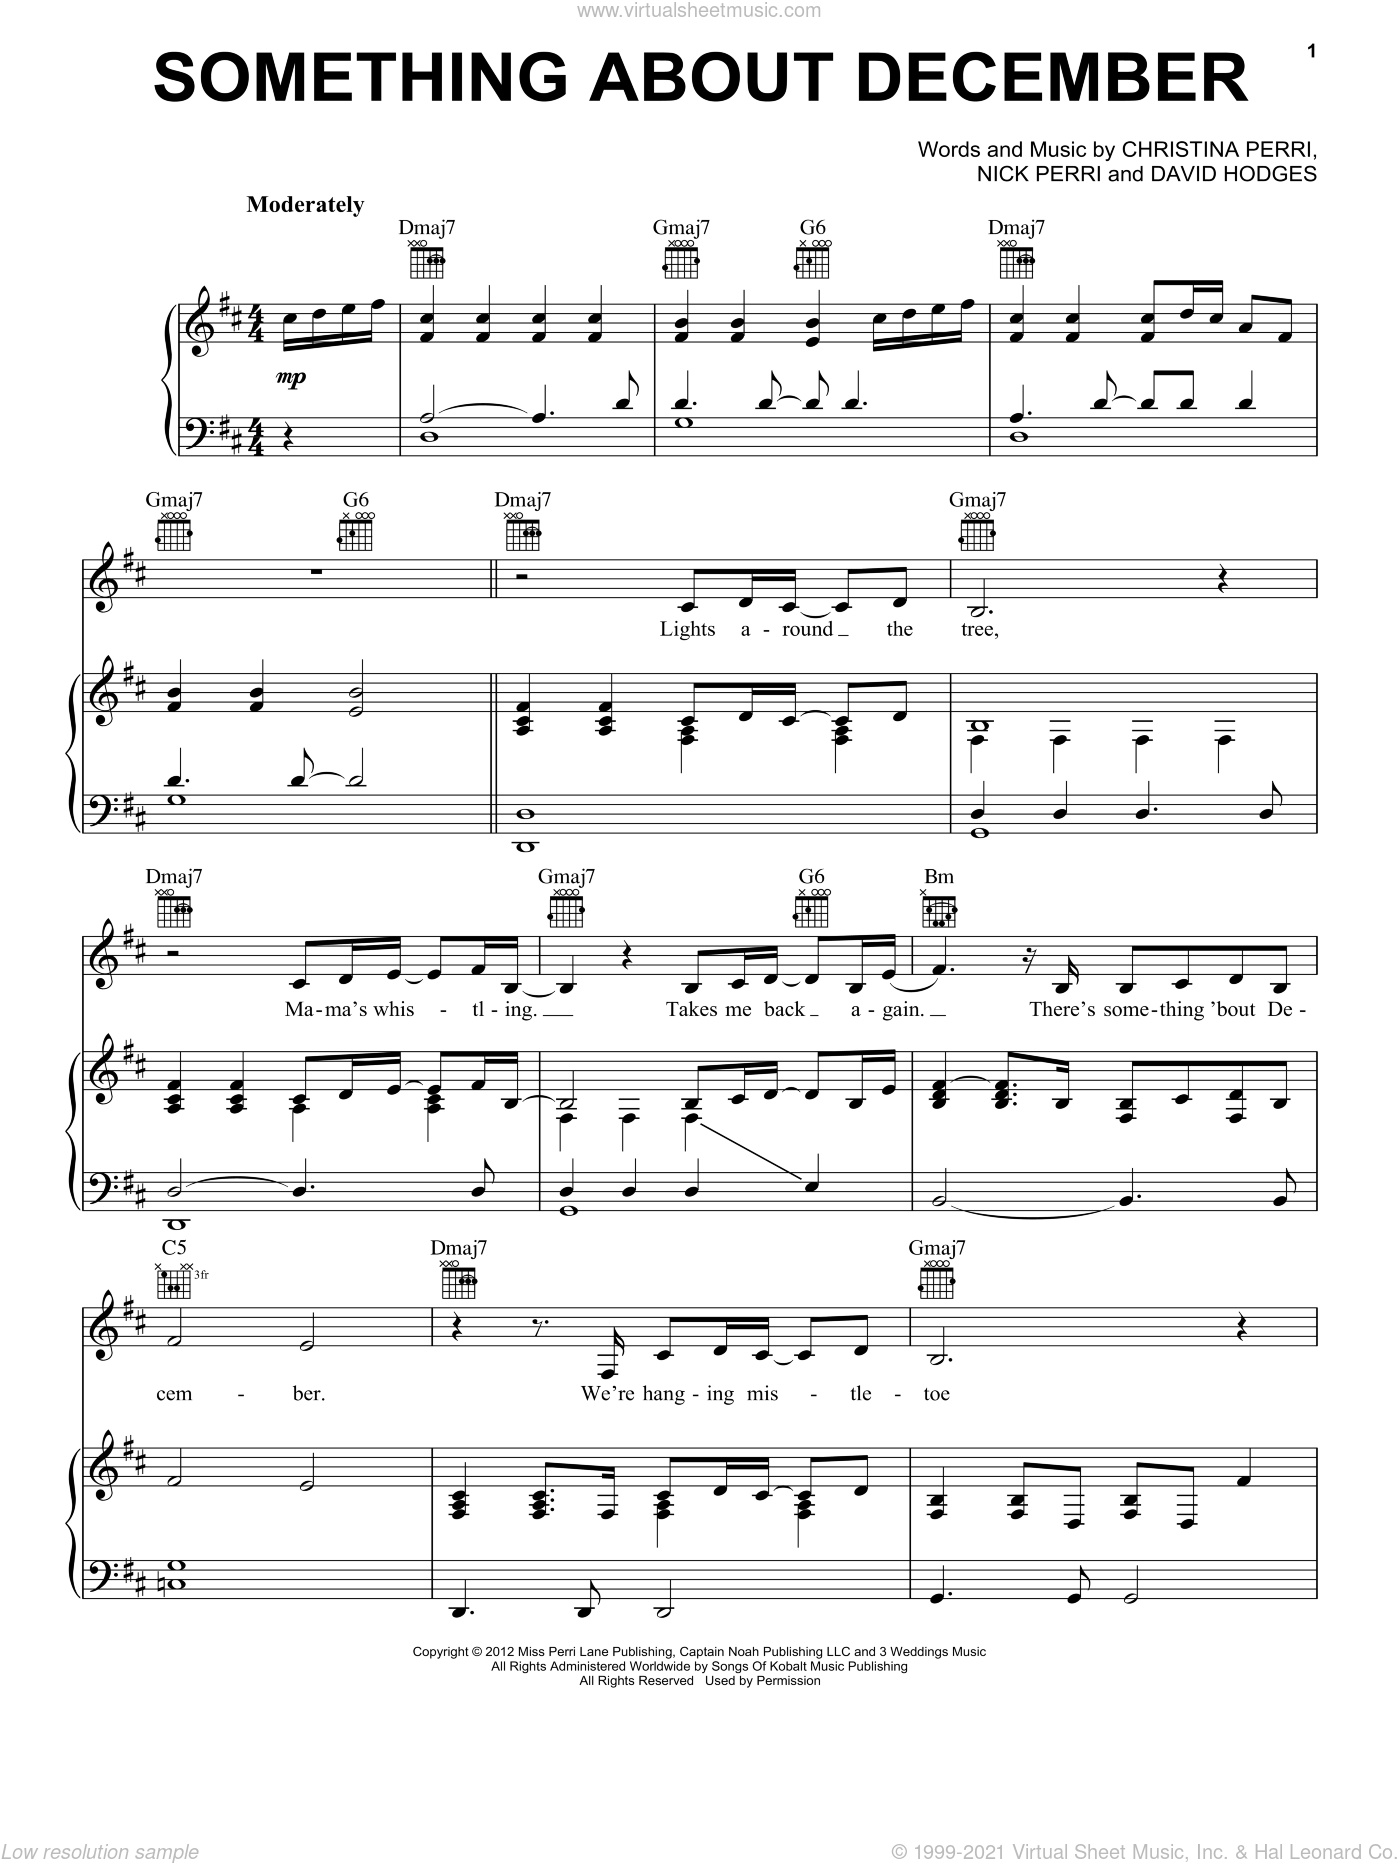 Something About December sheet music for voice, piano or guitar by Christina Perri, David Hodges and Nick Perri, intermediate skill level